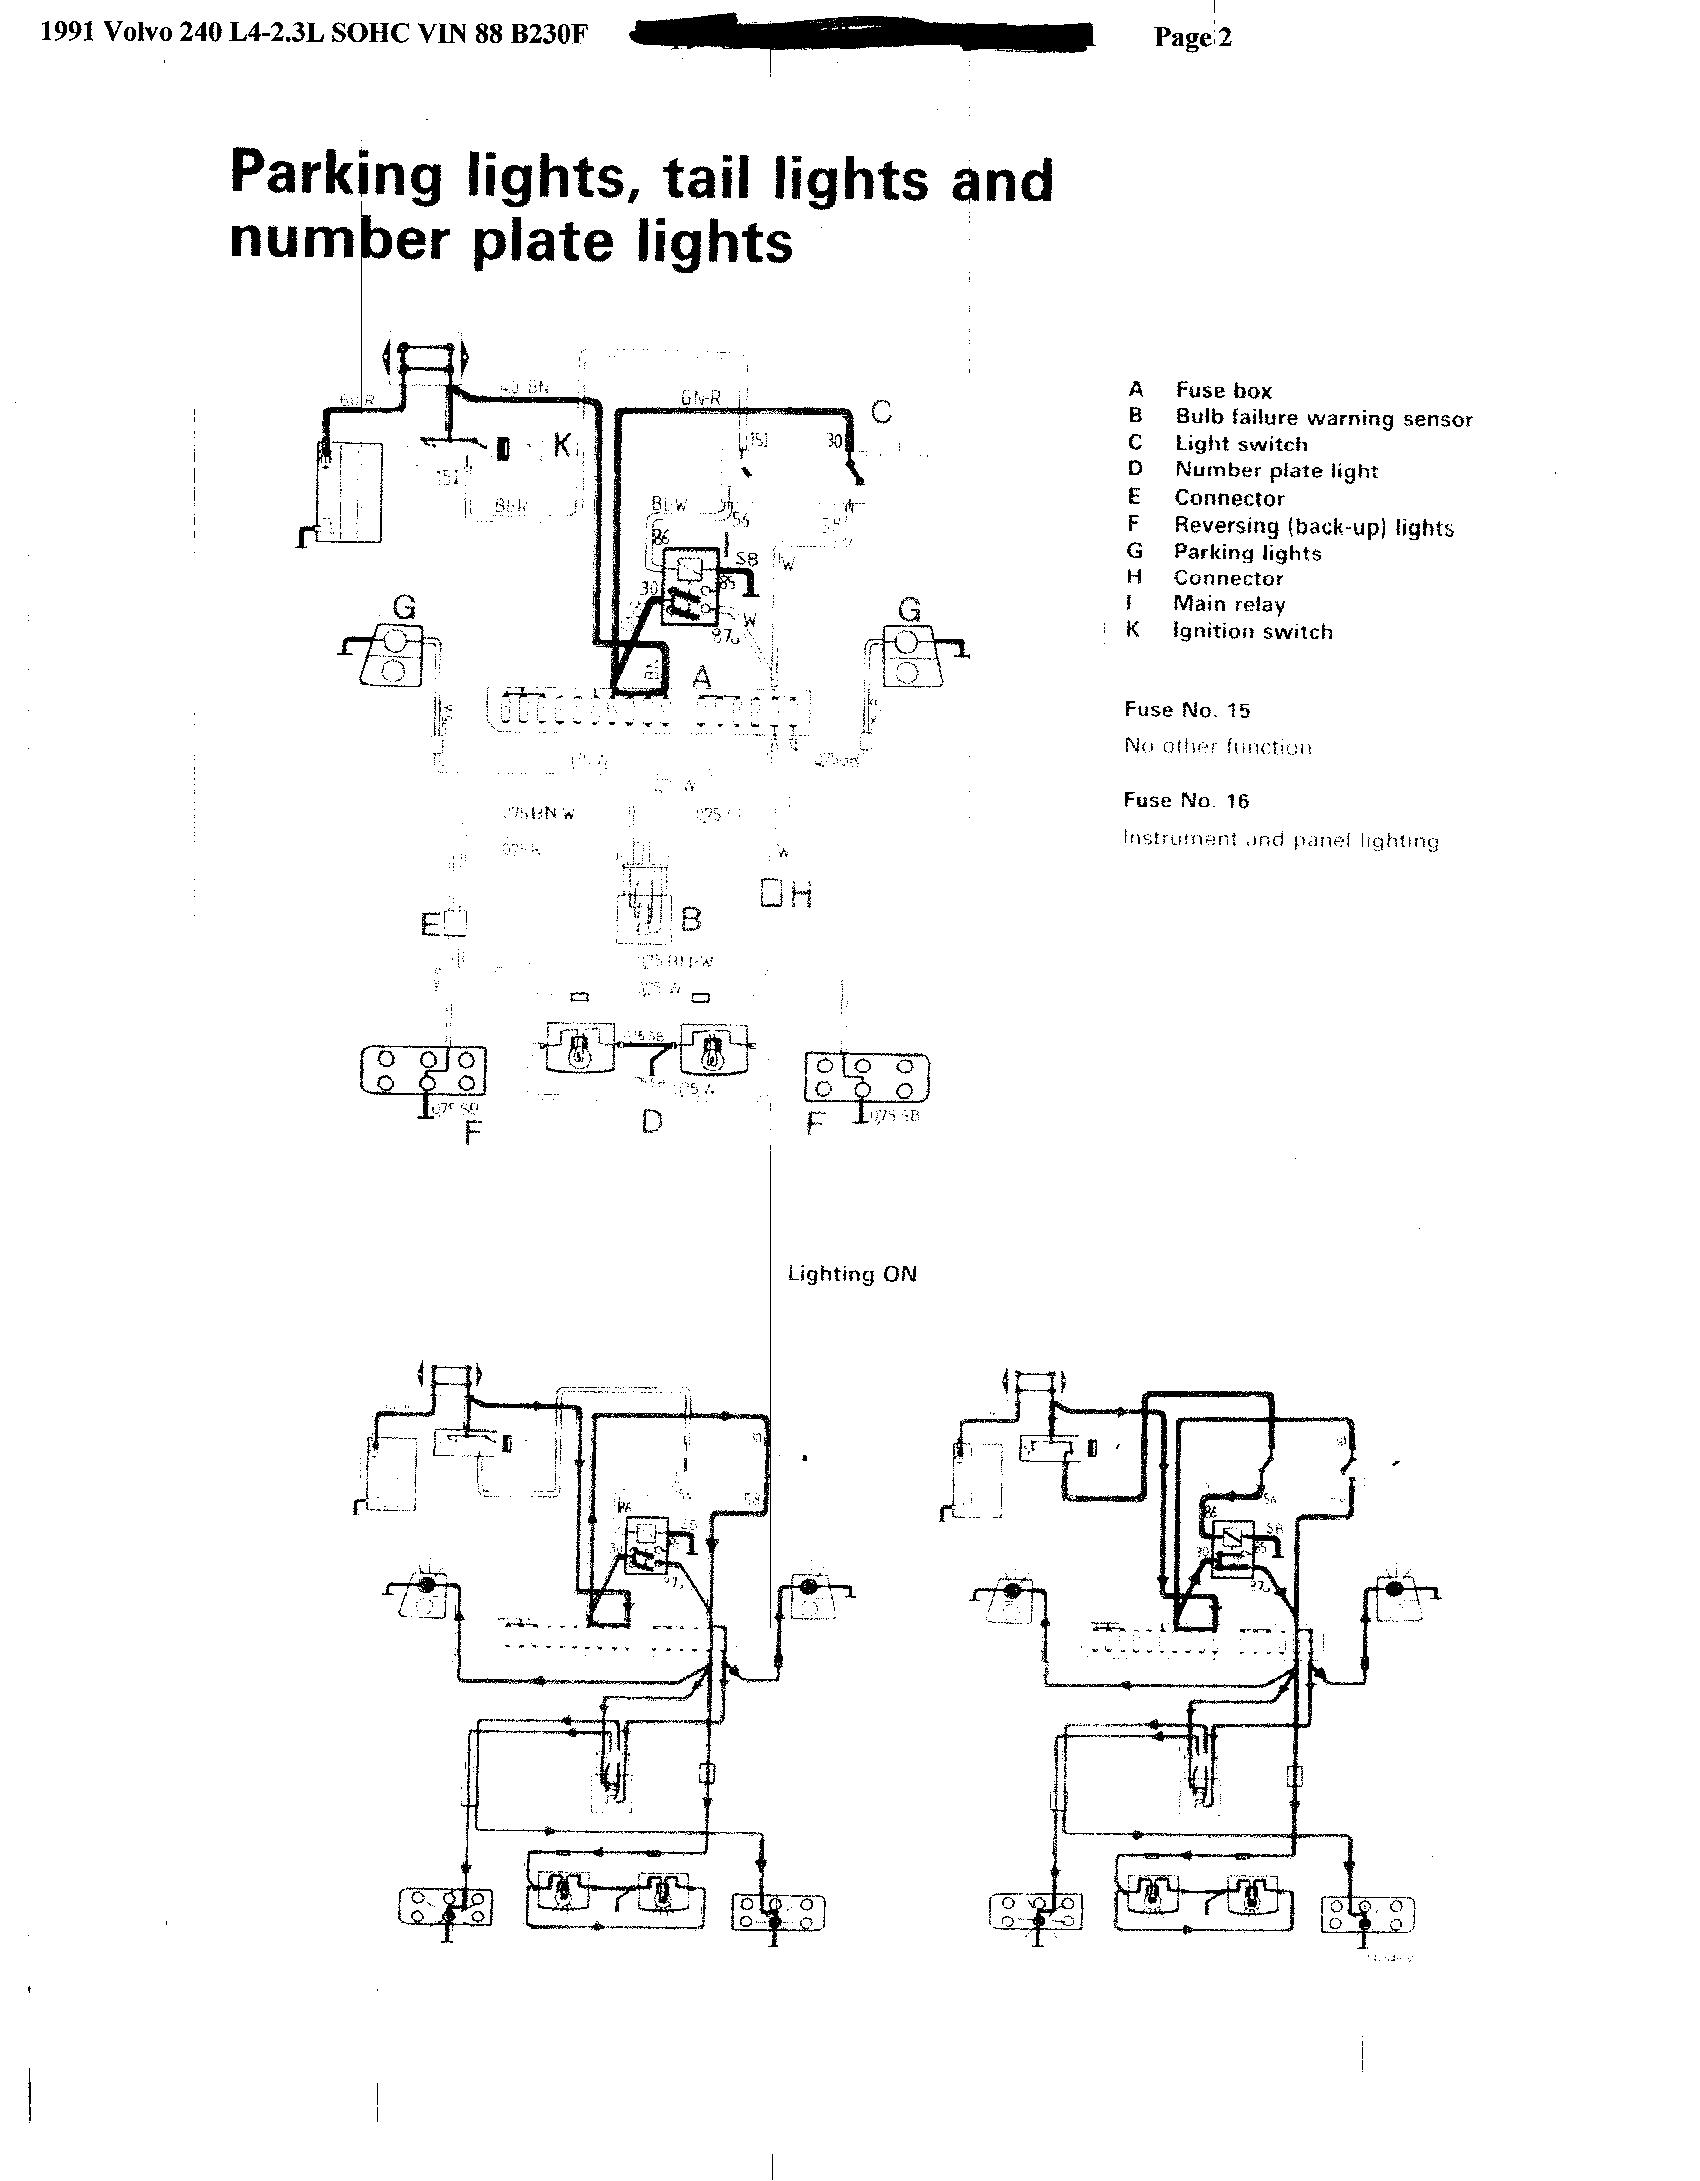 volvo 240 wiring diagram 1988 zz 2985  volvo 240 wiring diagram on 1991 volvo 240 stereo wiring  volvo 240 wiring diagram on 1991 volvo